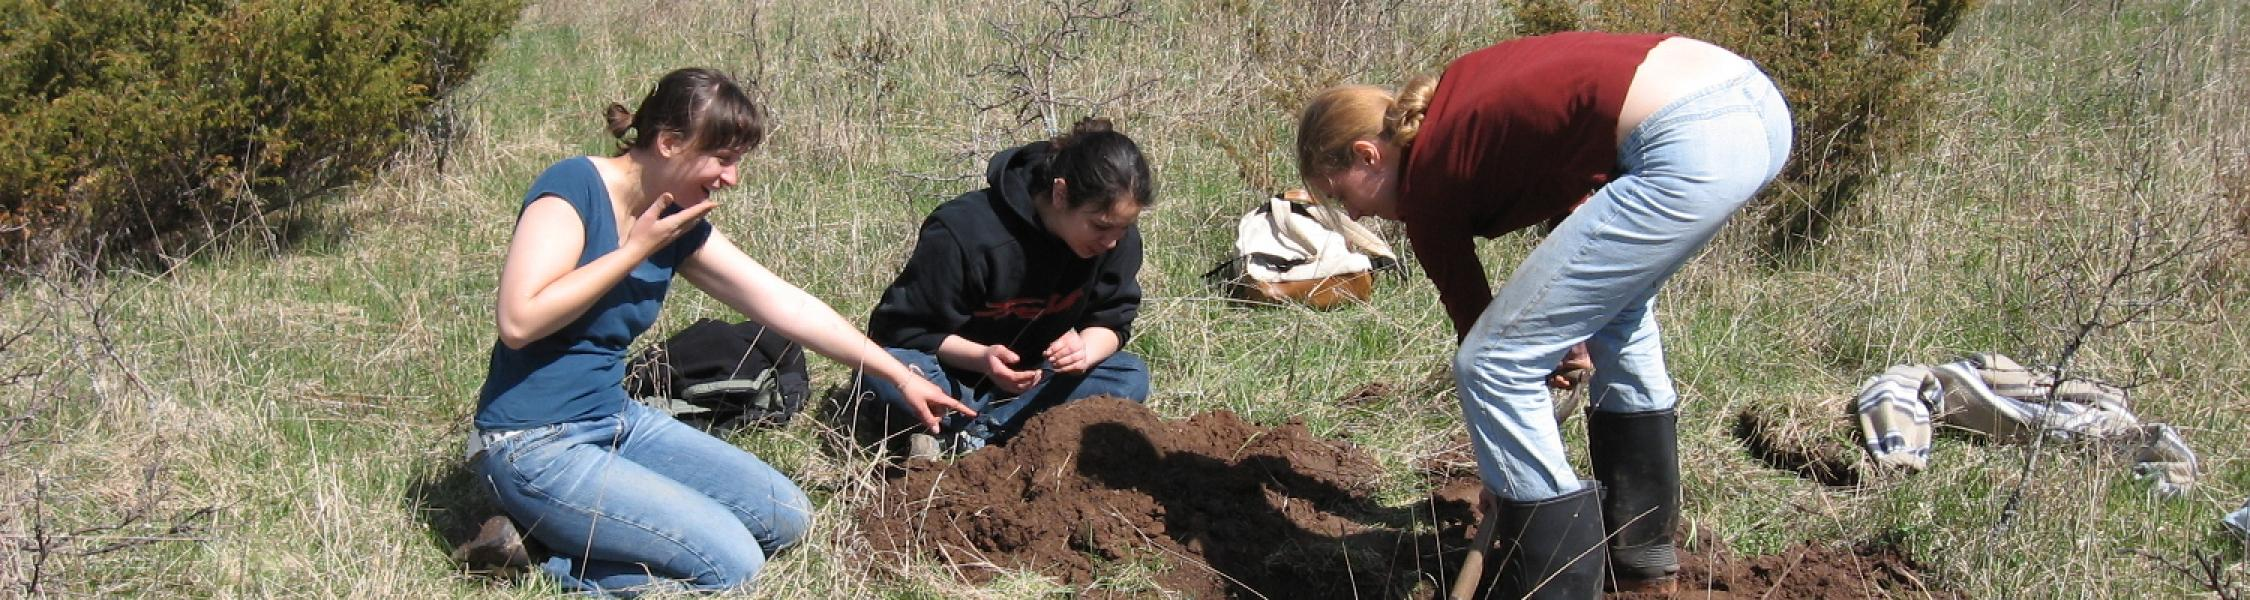 3 female students digging hole in field